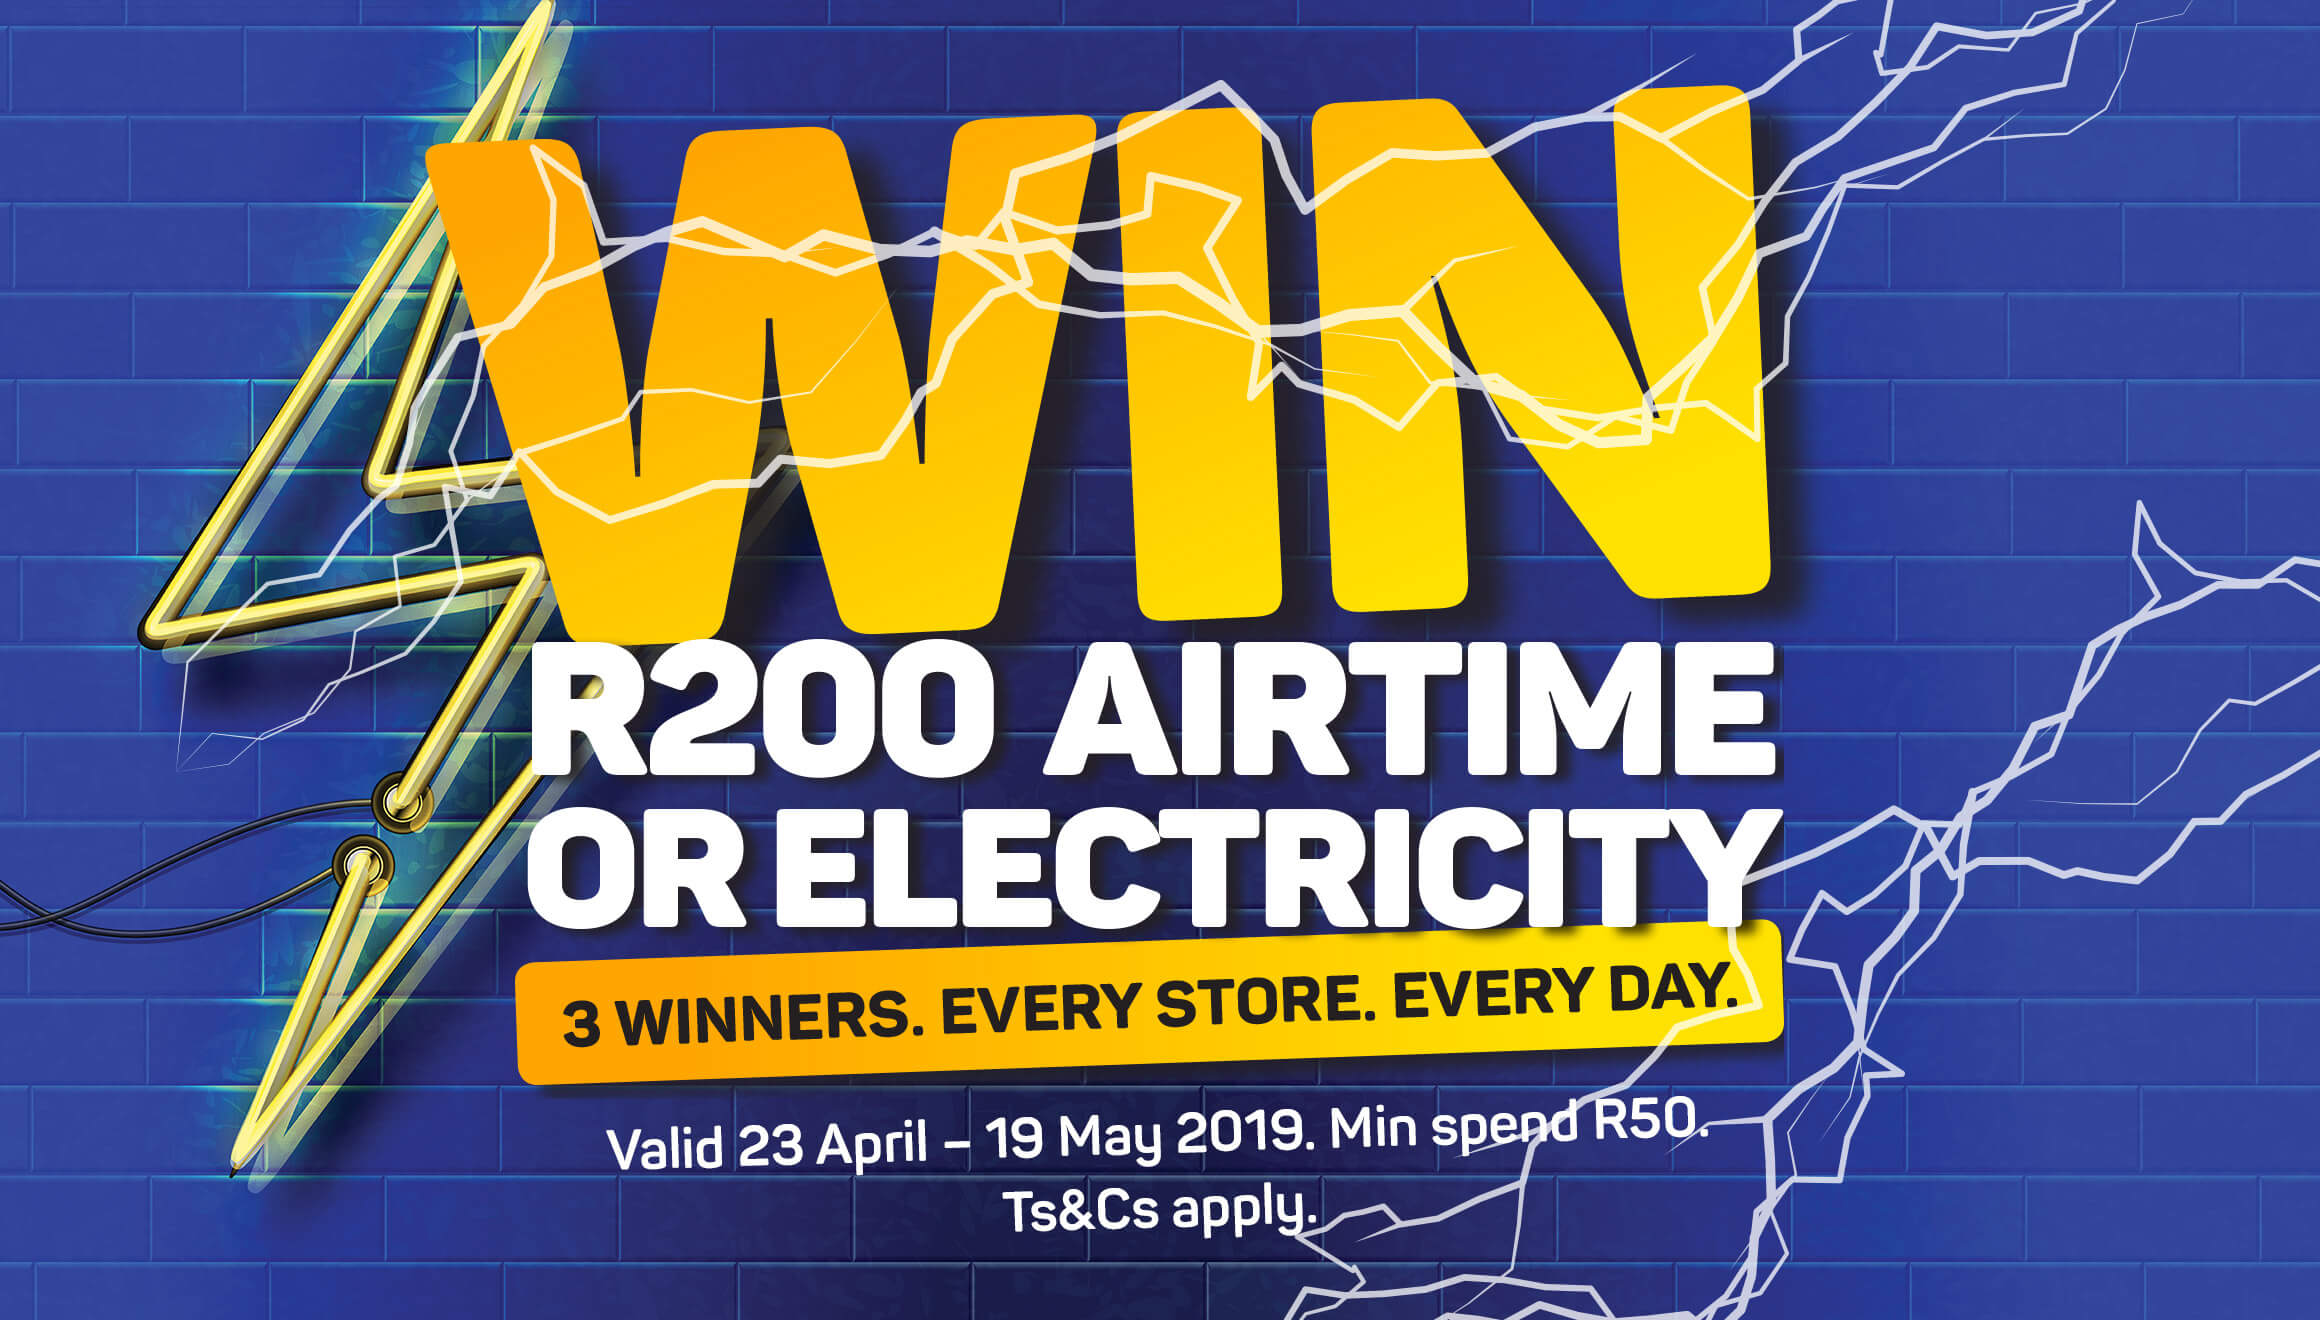 Win R200 Airtime or electricity. 3 winners • Every store • Every day